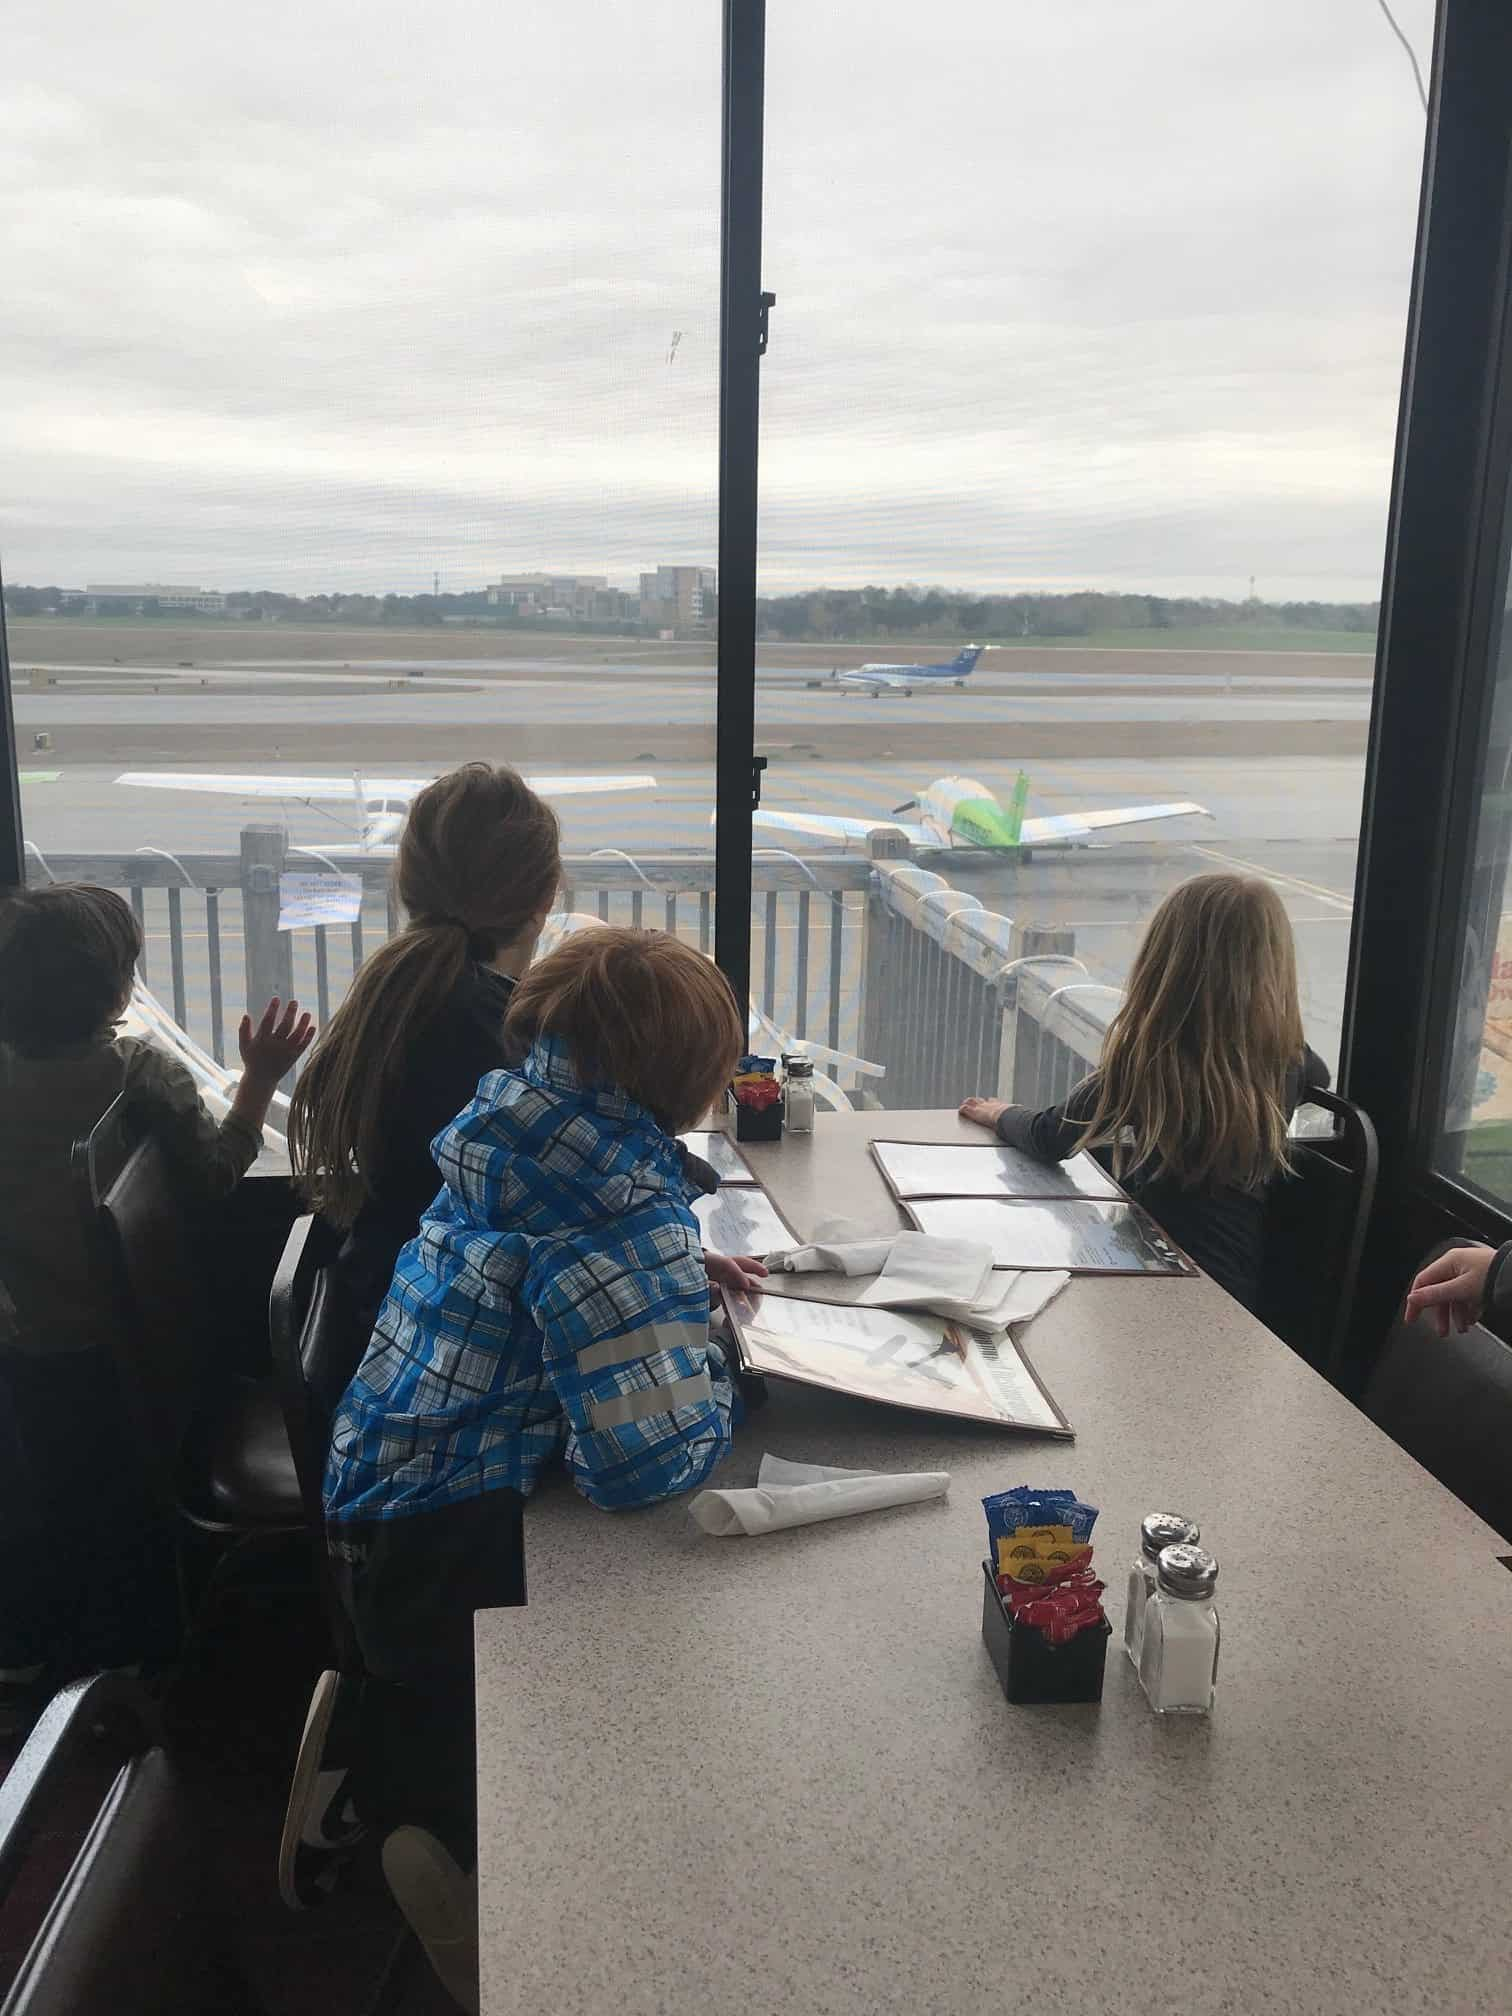 Atlanta's Best Family-Friendly Restaurants: Downwind Restaurant & Lounge #AtlantaRestaurant #KidRestaurantAtlanta #AtlantaTravel #FamilyTravelAtlanta #FamilyTravel